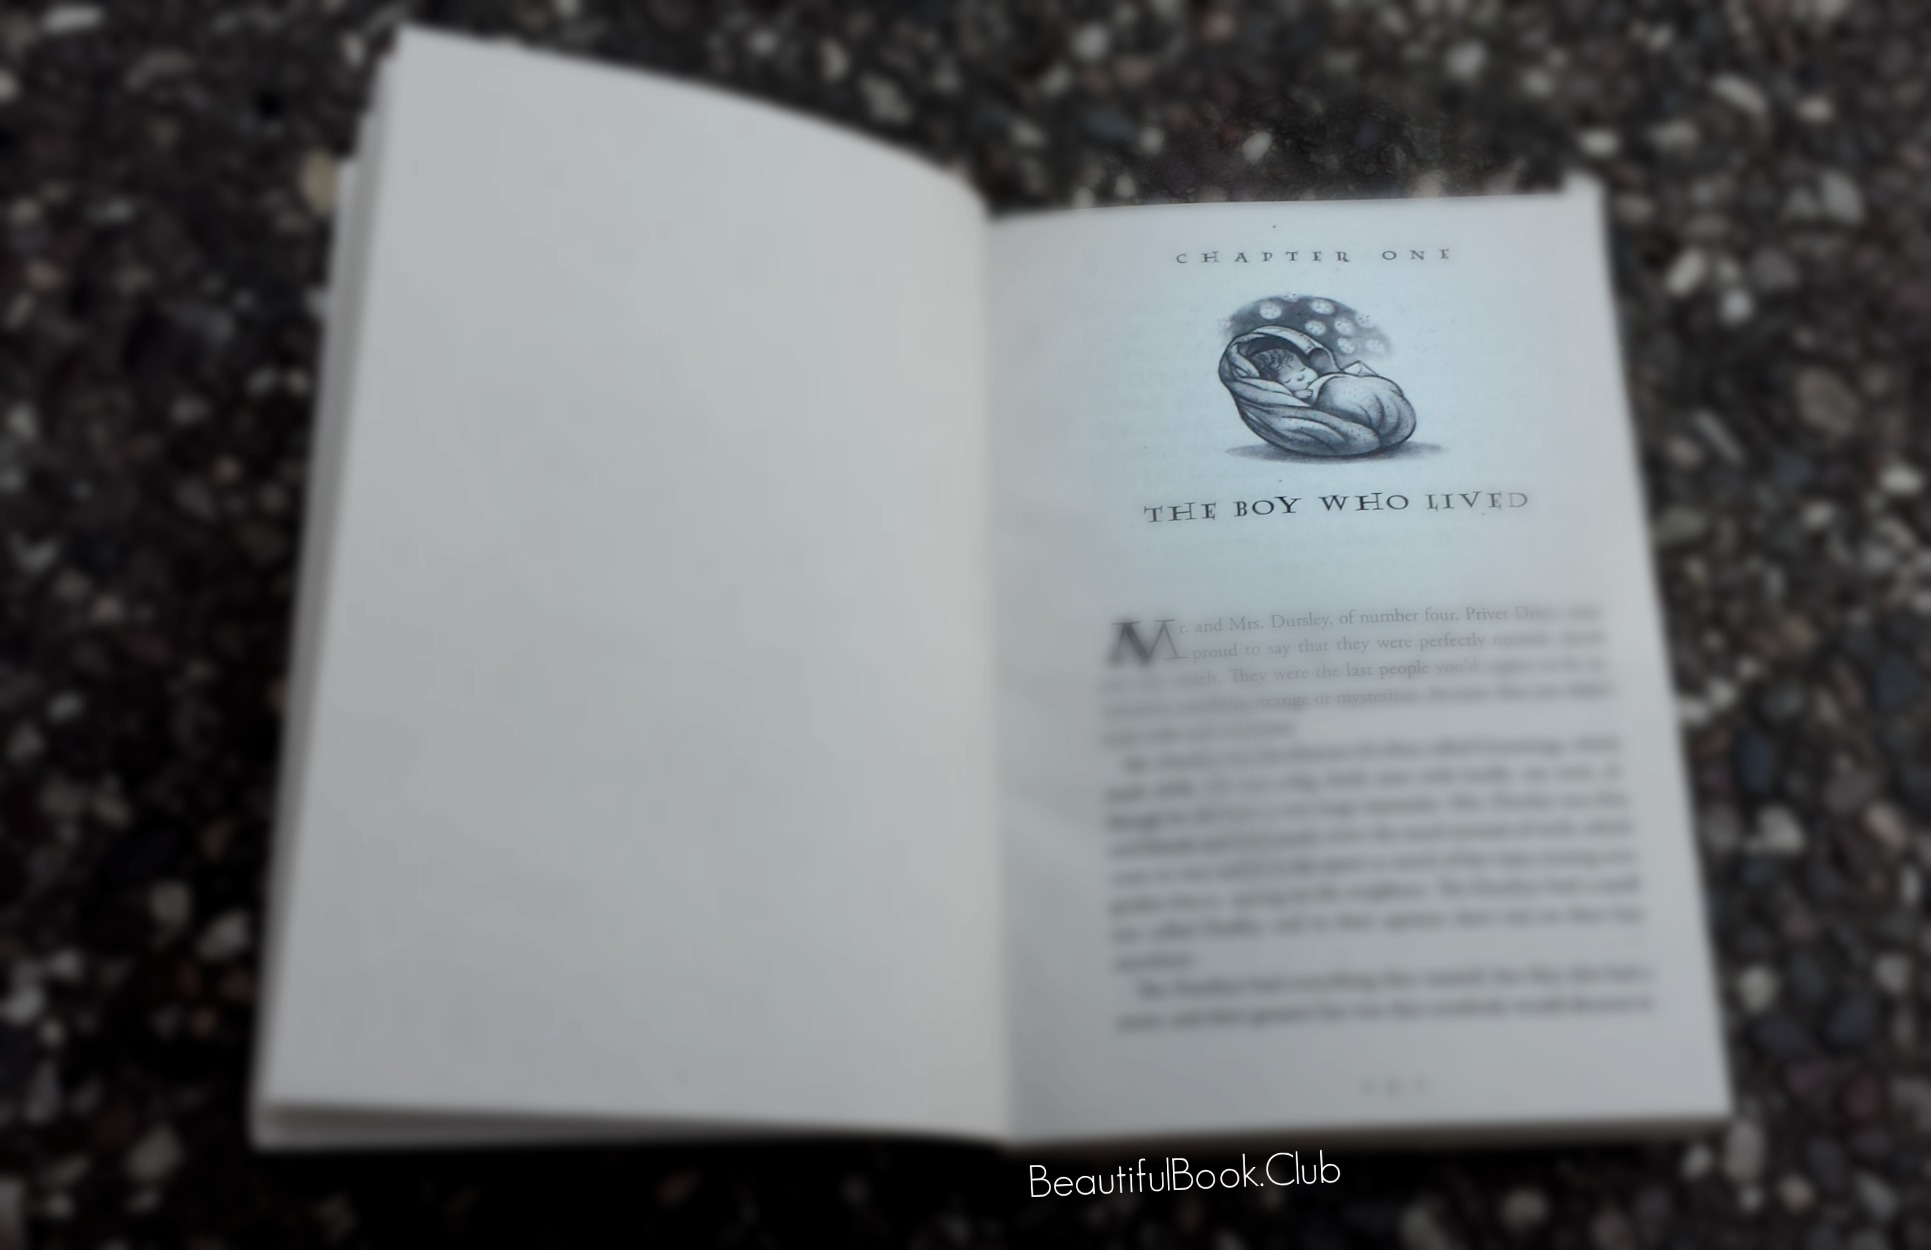 Harry Potter and the Sorcerer's Stone by J.K Rowling, The Boy Who Lived